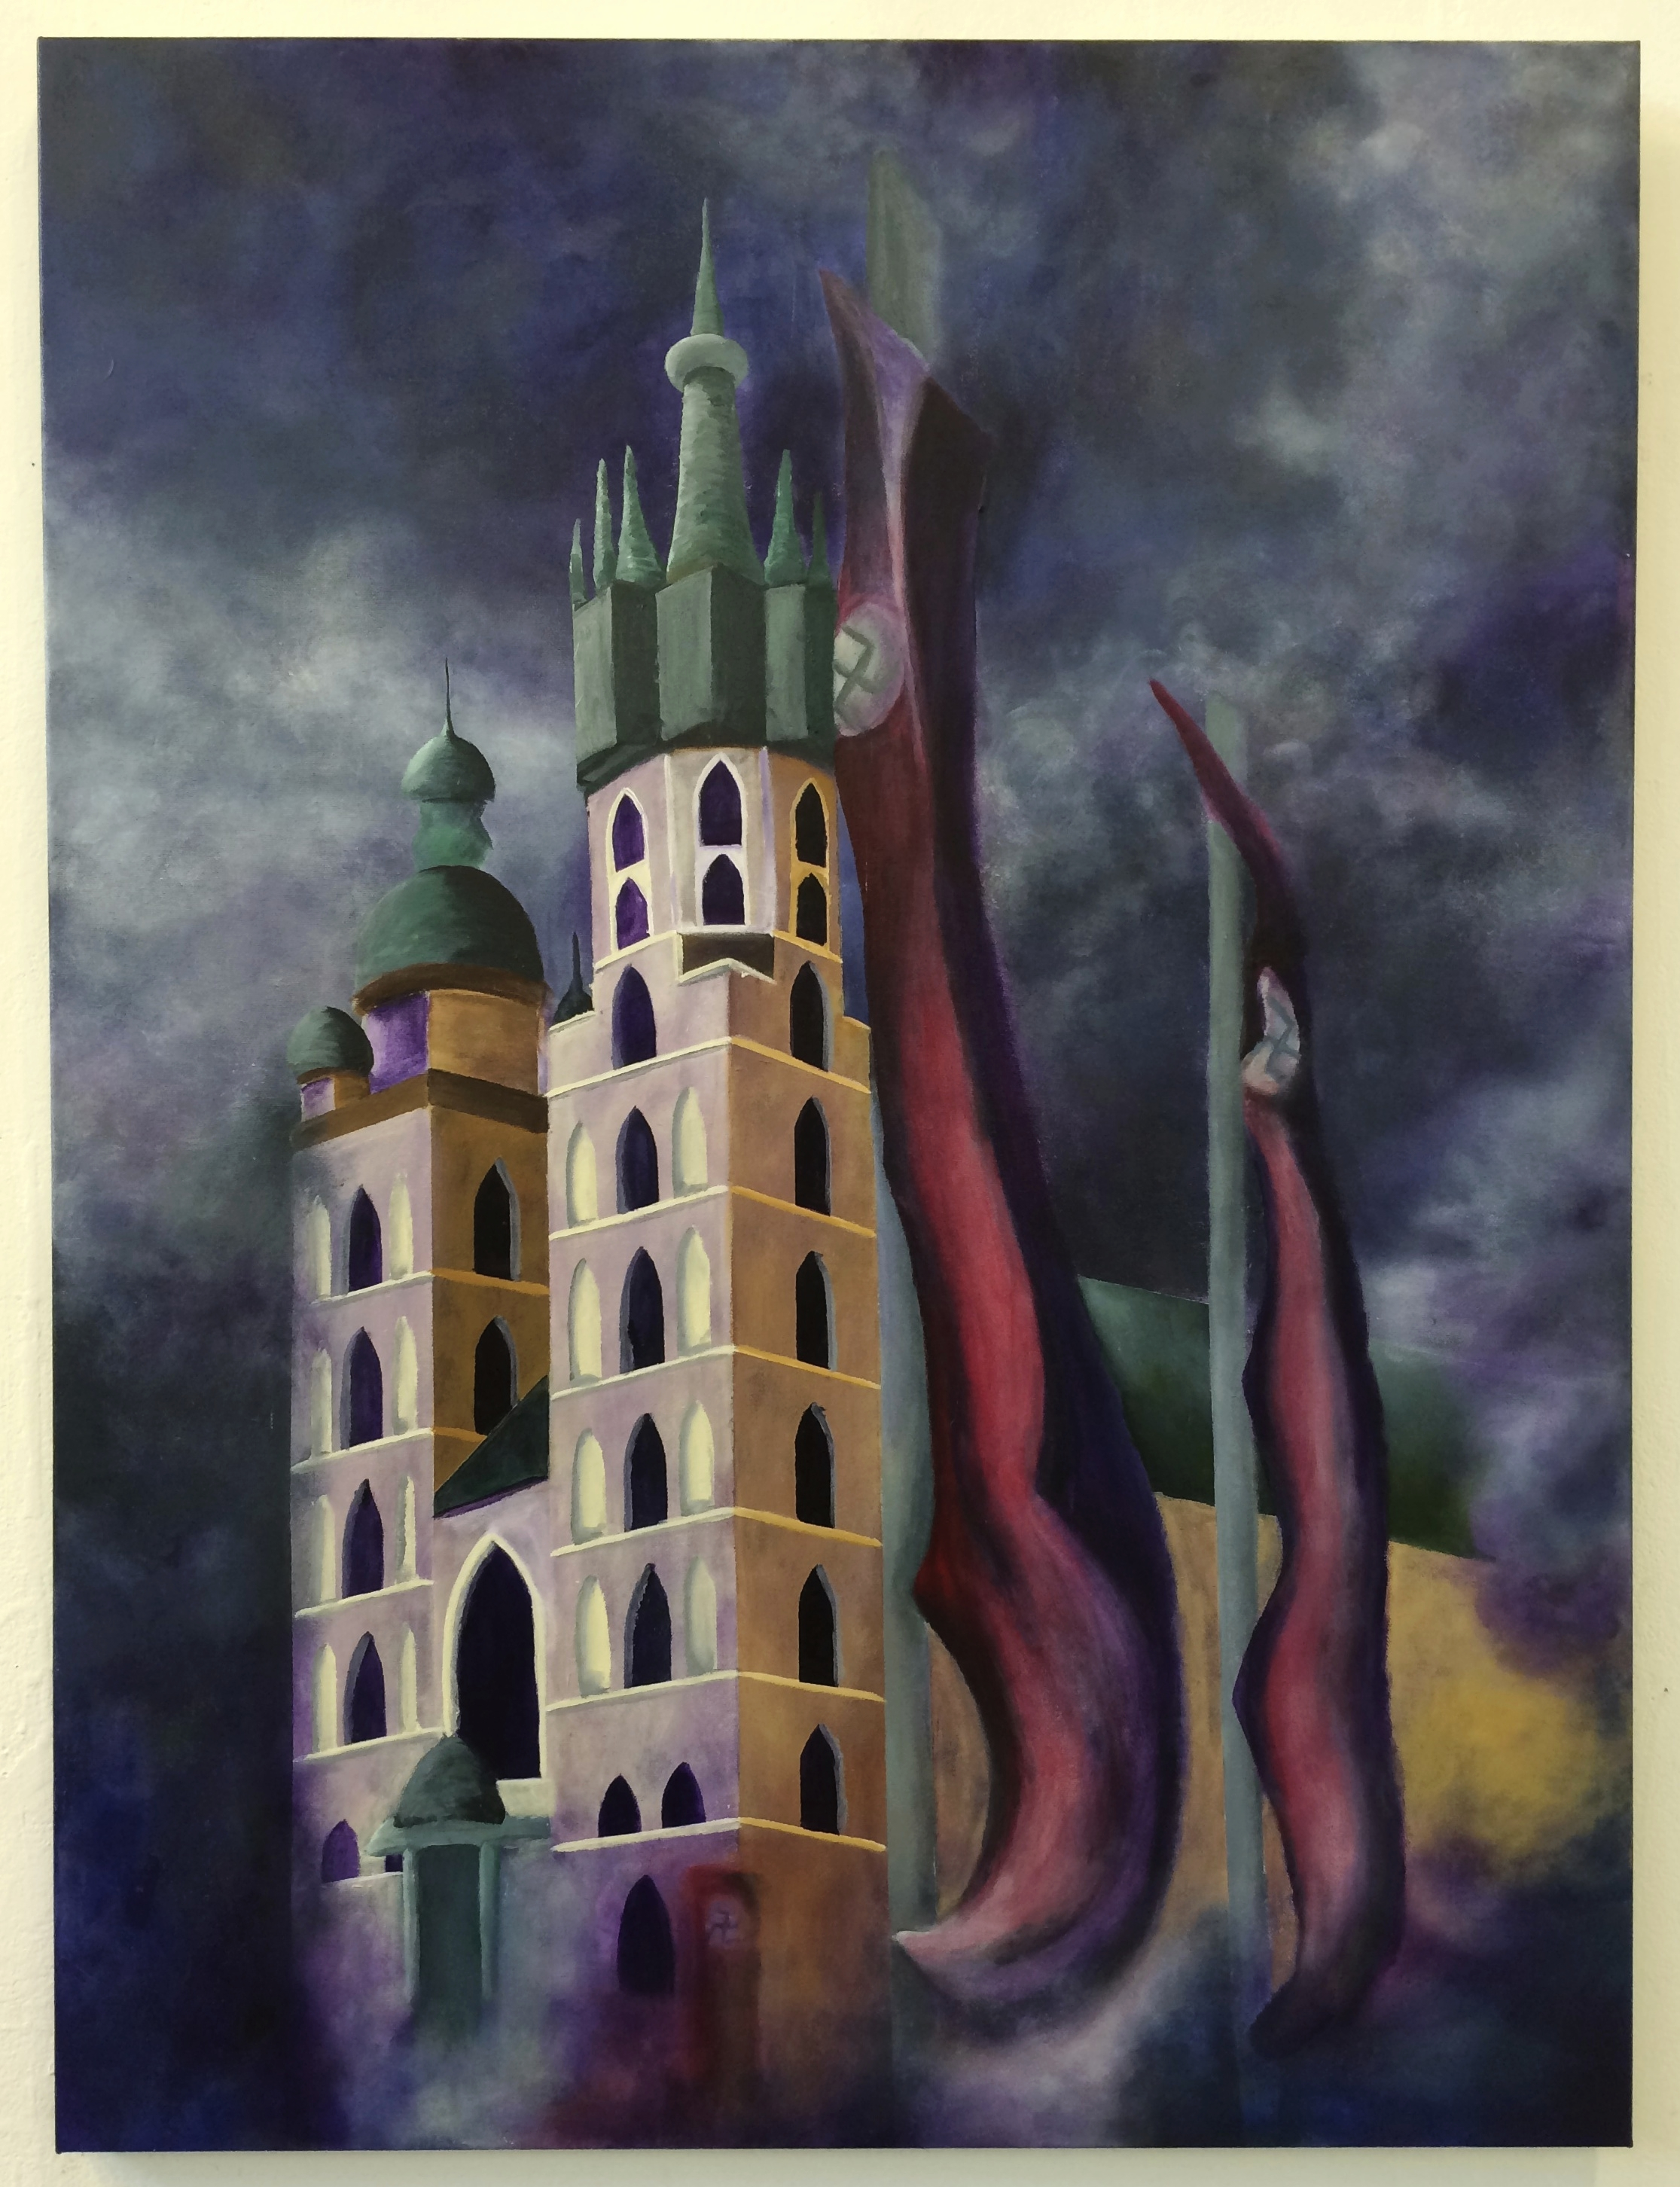 Hitler's Favourite City     Oil and Acrylic on Canvas